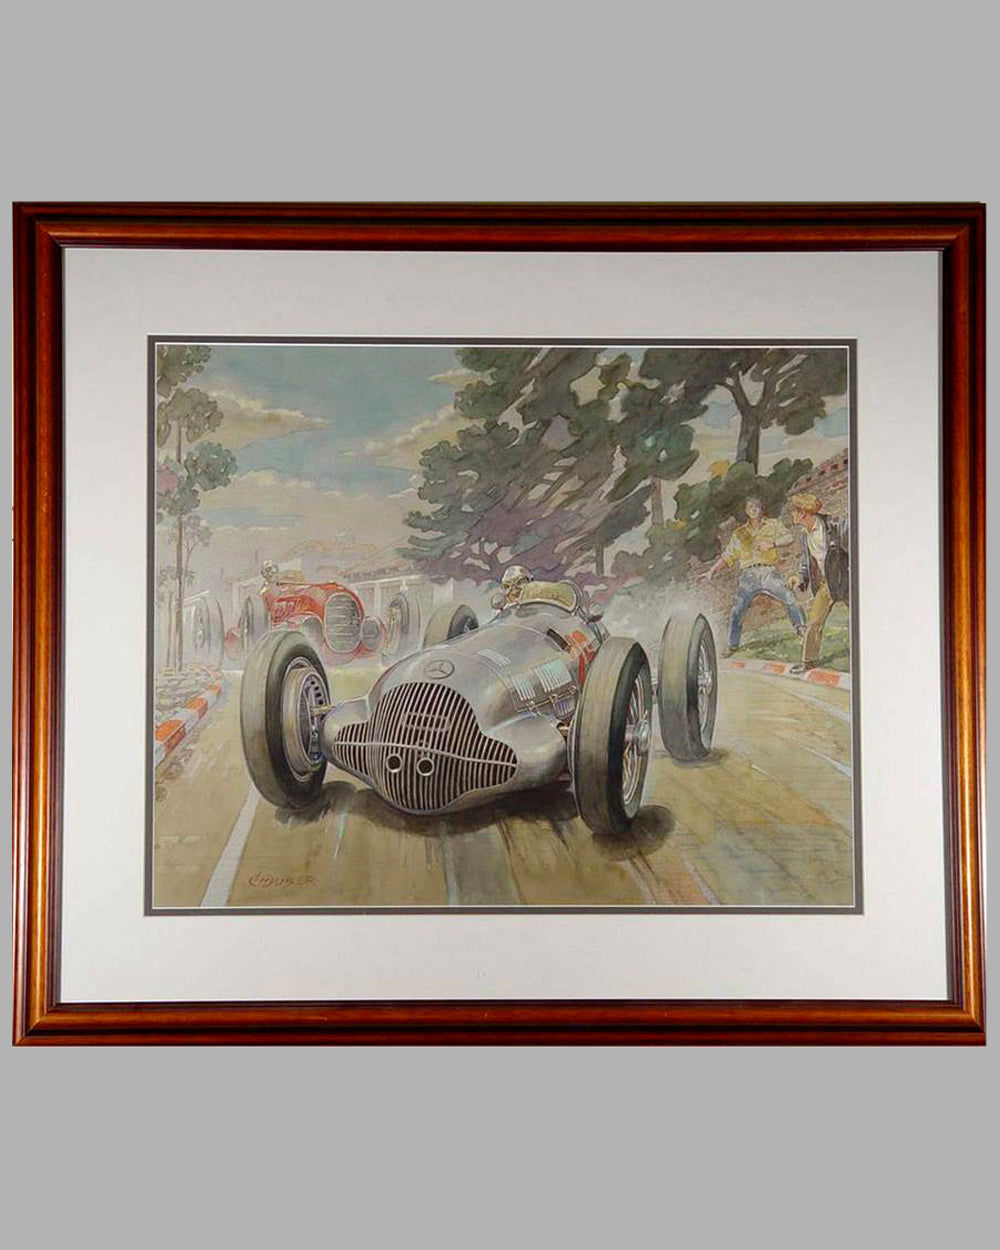 1938 Coppa Acerbo painting by Louis Huber